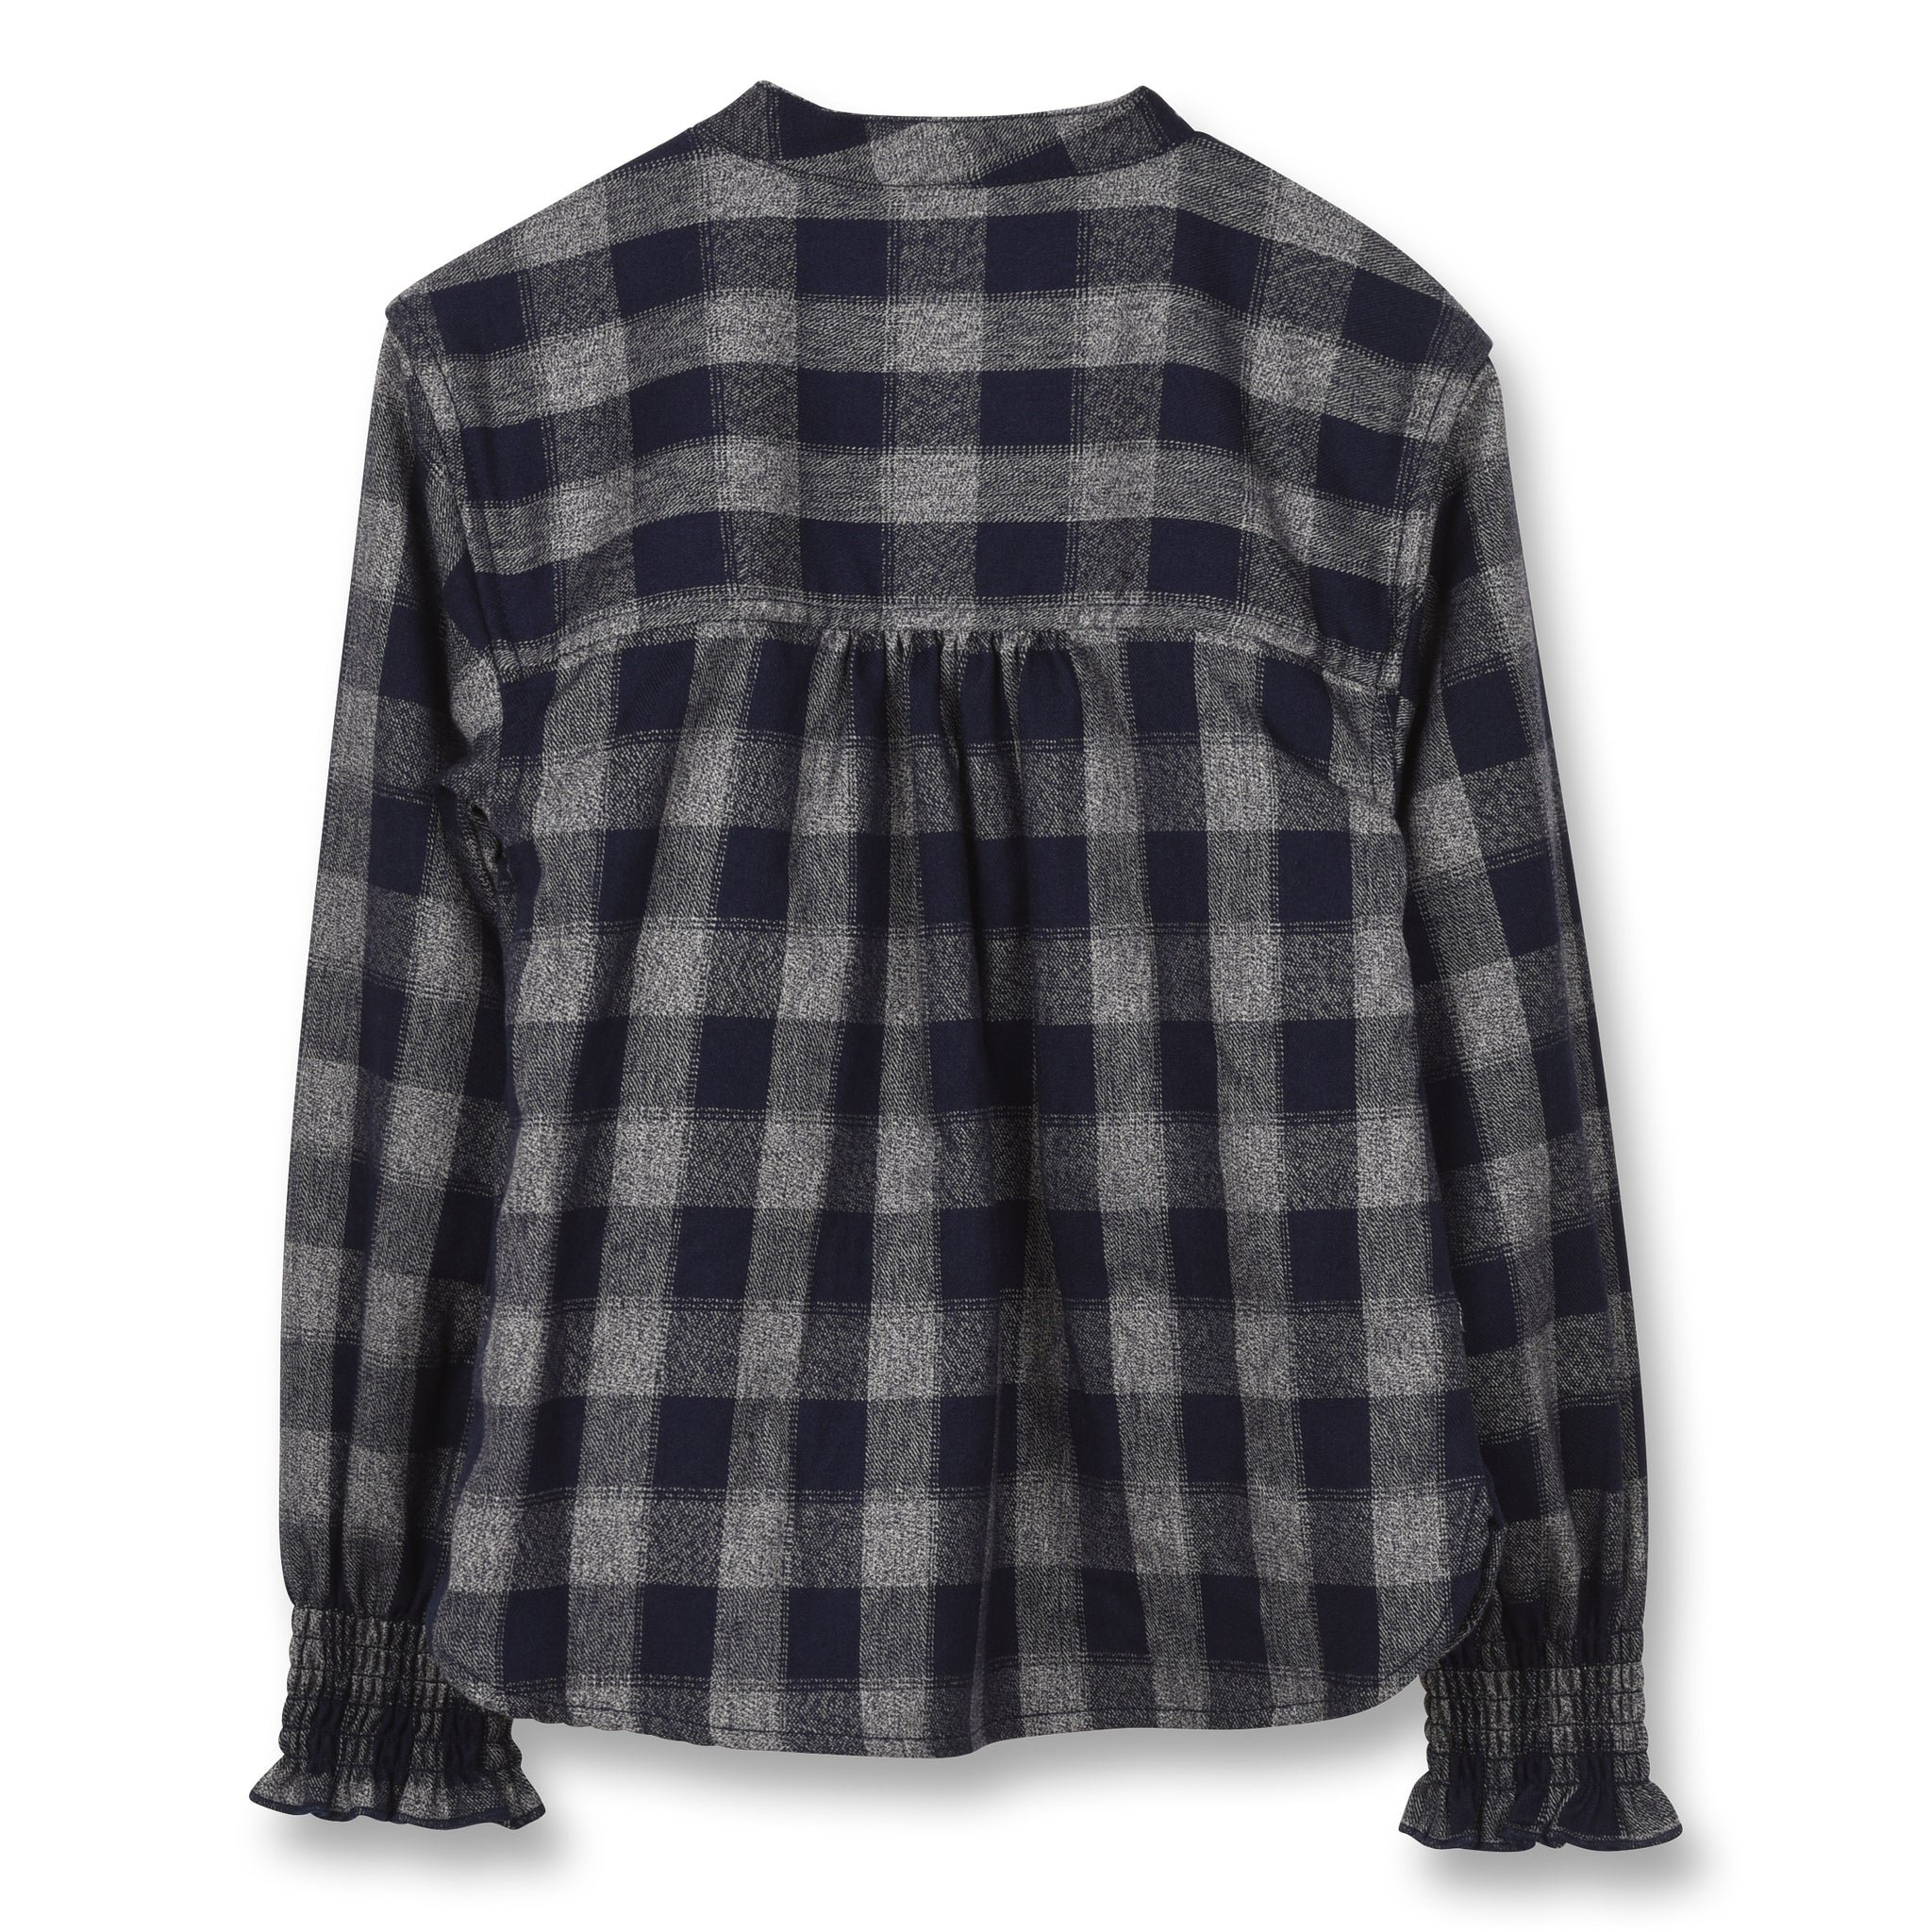 SWINDLE Sailor Blue Checker - Long Sleeves Blouse With Ruffles 2